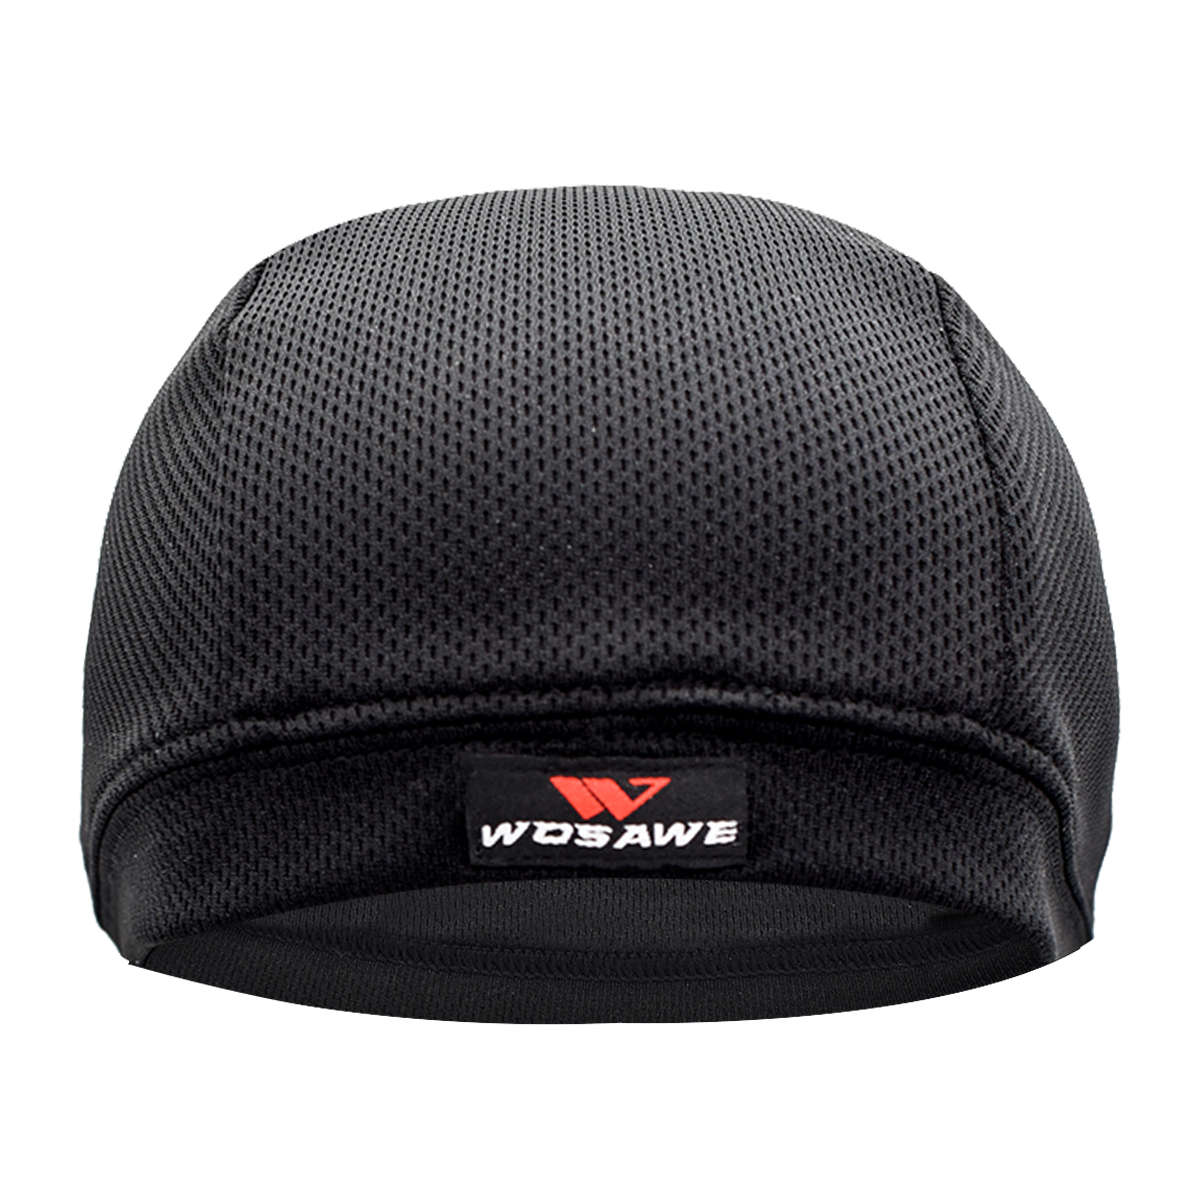 Motorcycle Helmet Lining-Caps Anti-Sweat-Hat Racing WOSAWE Ski Mesh Thin Breathable Mens title=